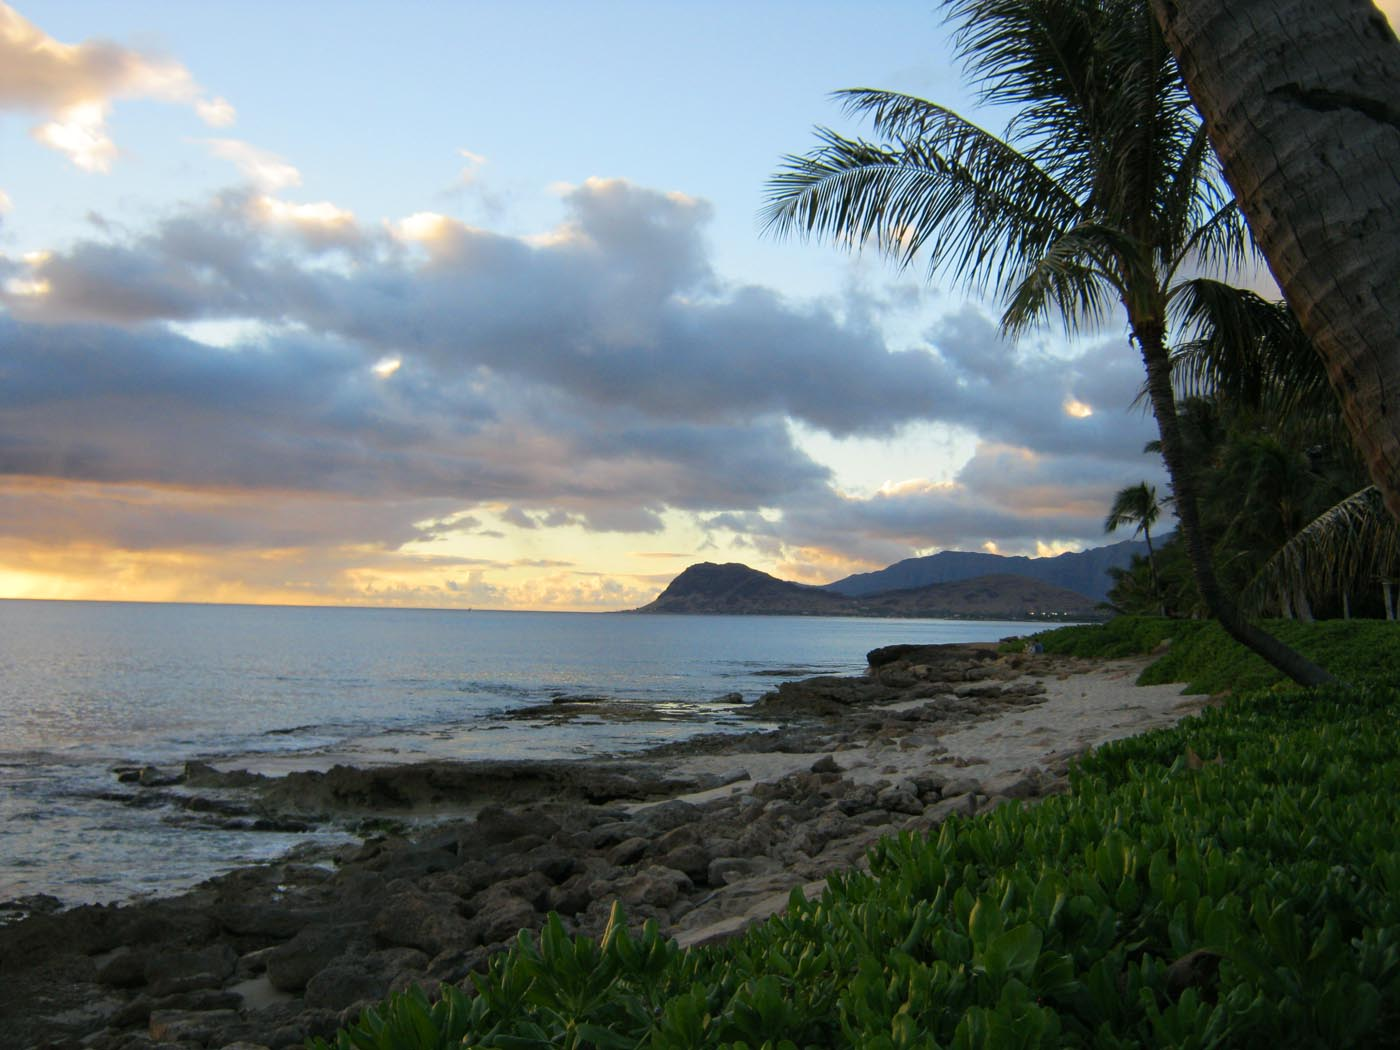 Sunset at Paradise Cove in Oahu